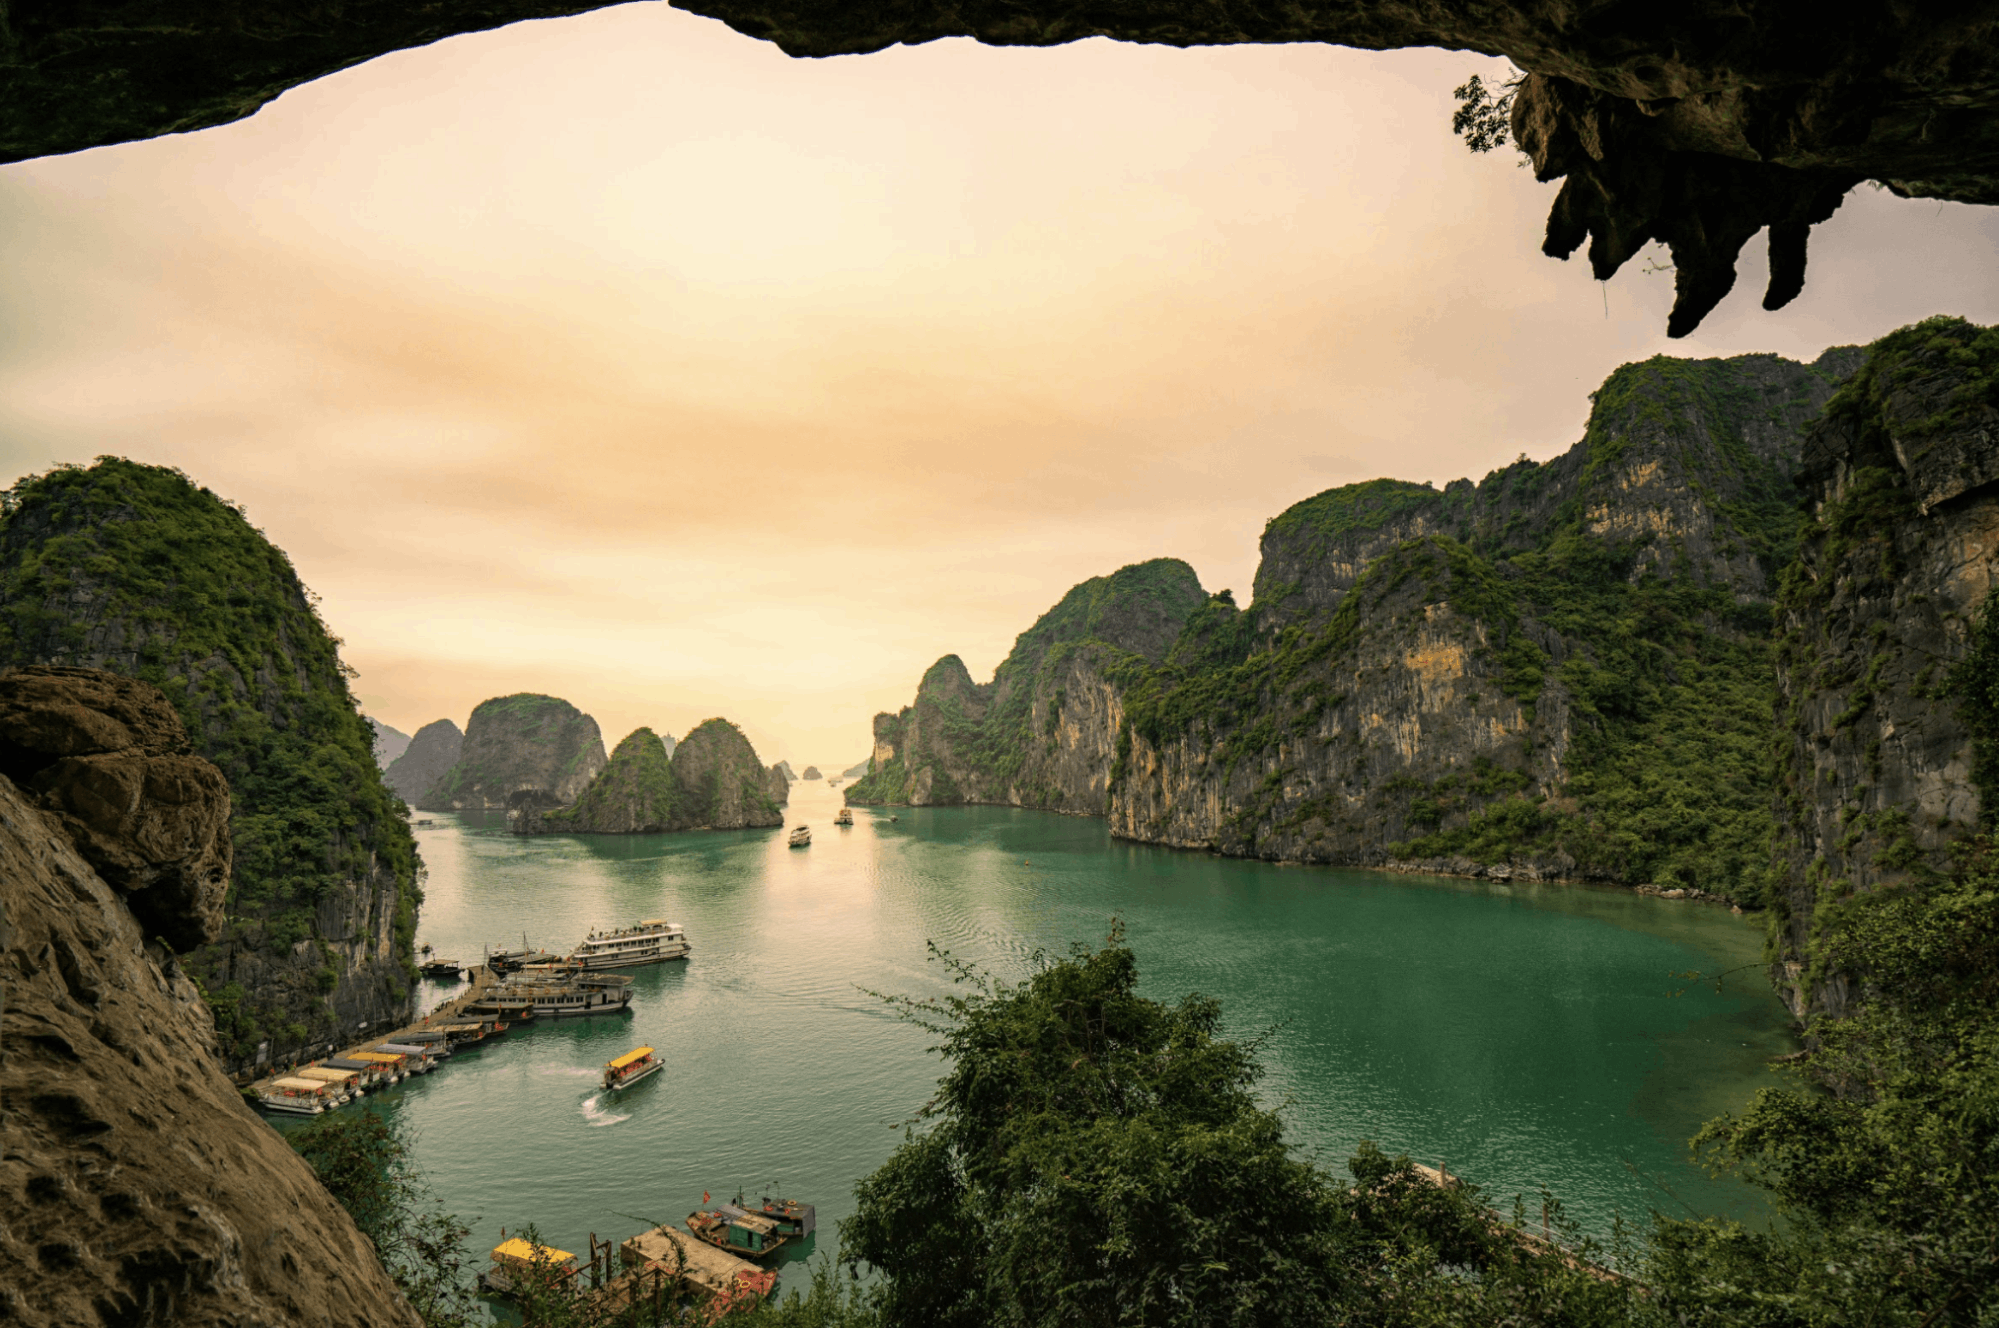 What's the difference between Halong, Bai Tu Long & Lan Ha Bay?